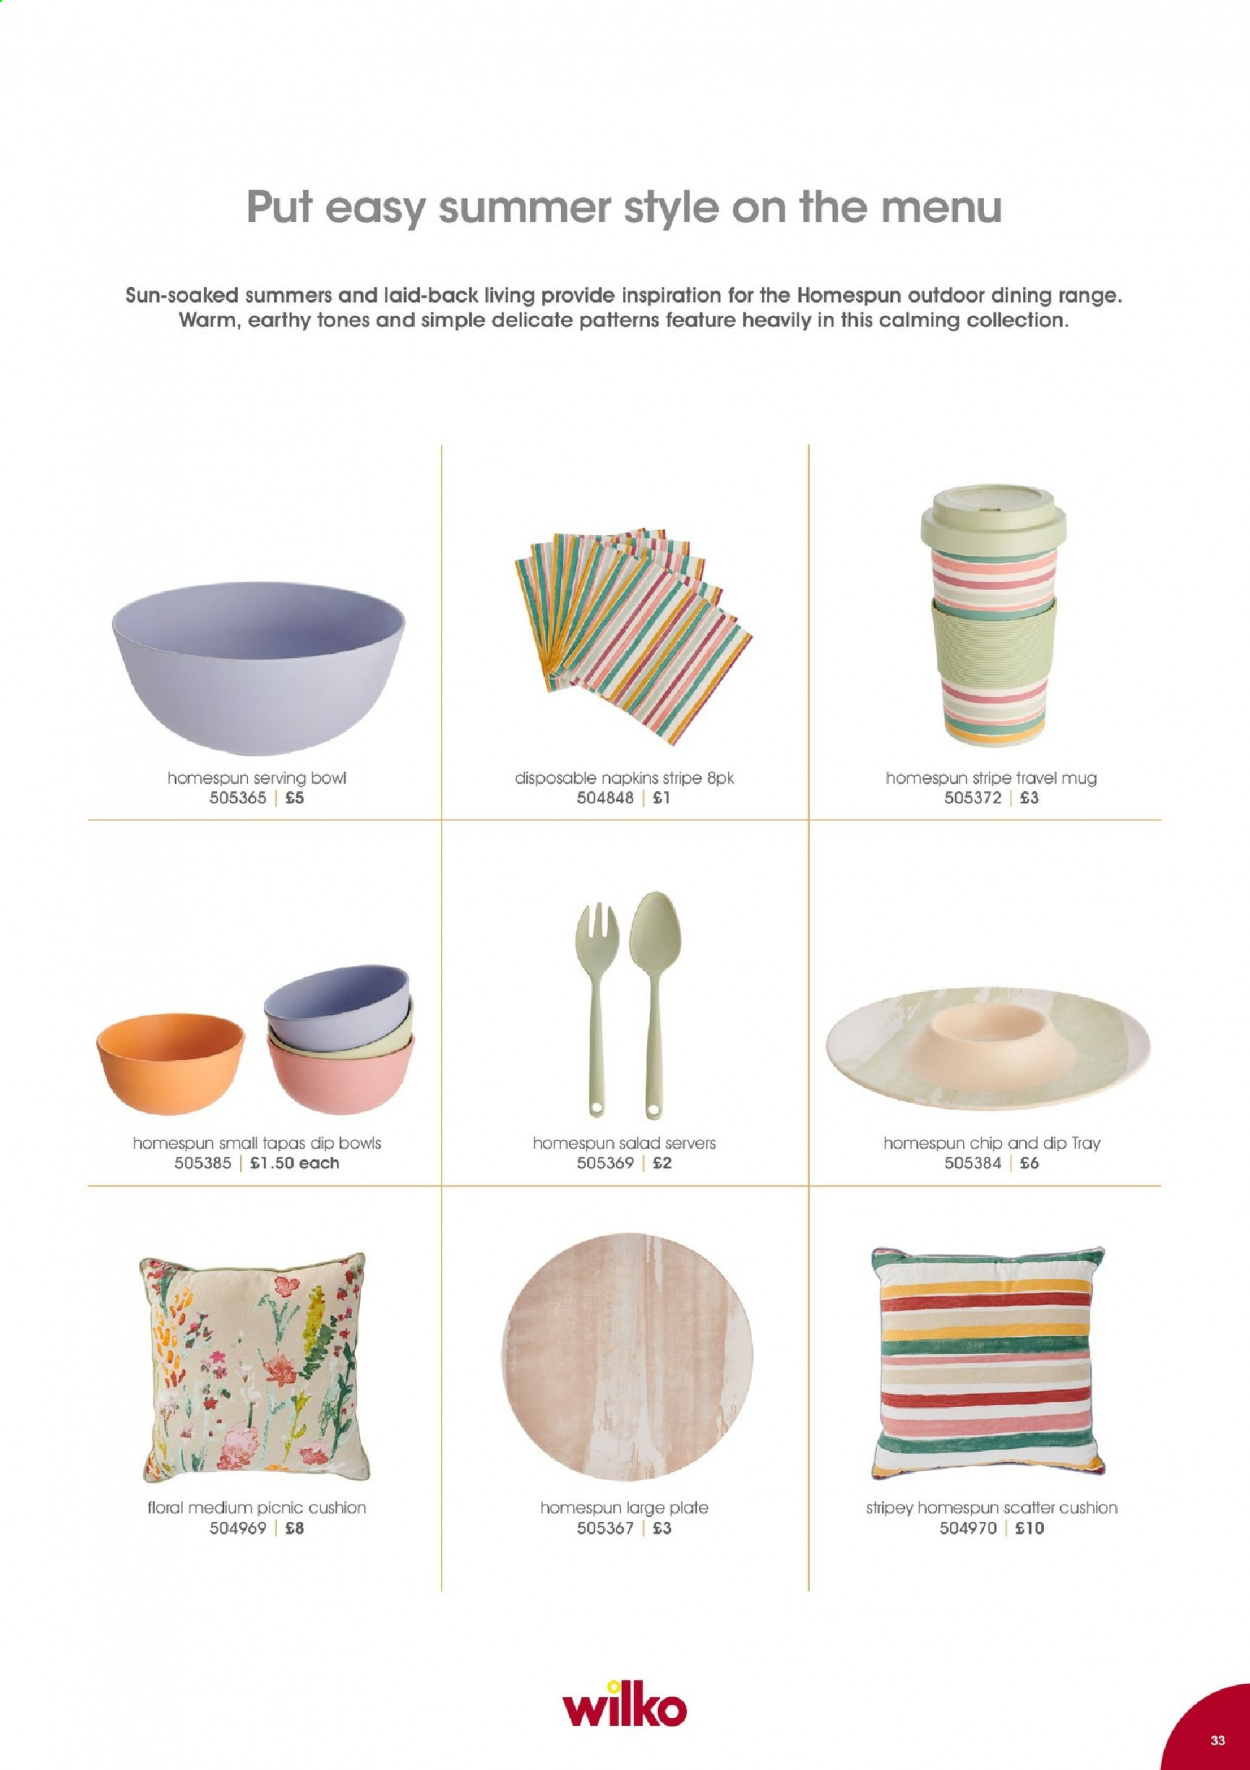 Wilko offer  - Sales products - cushion, mug, tray, plate, travel mug, serving bowl, bowl. Page 33.